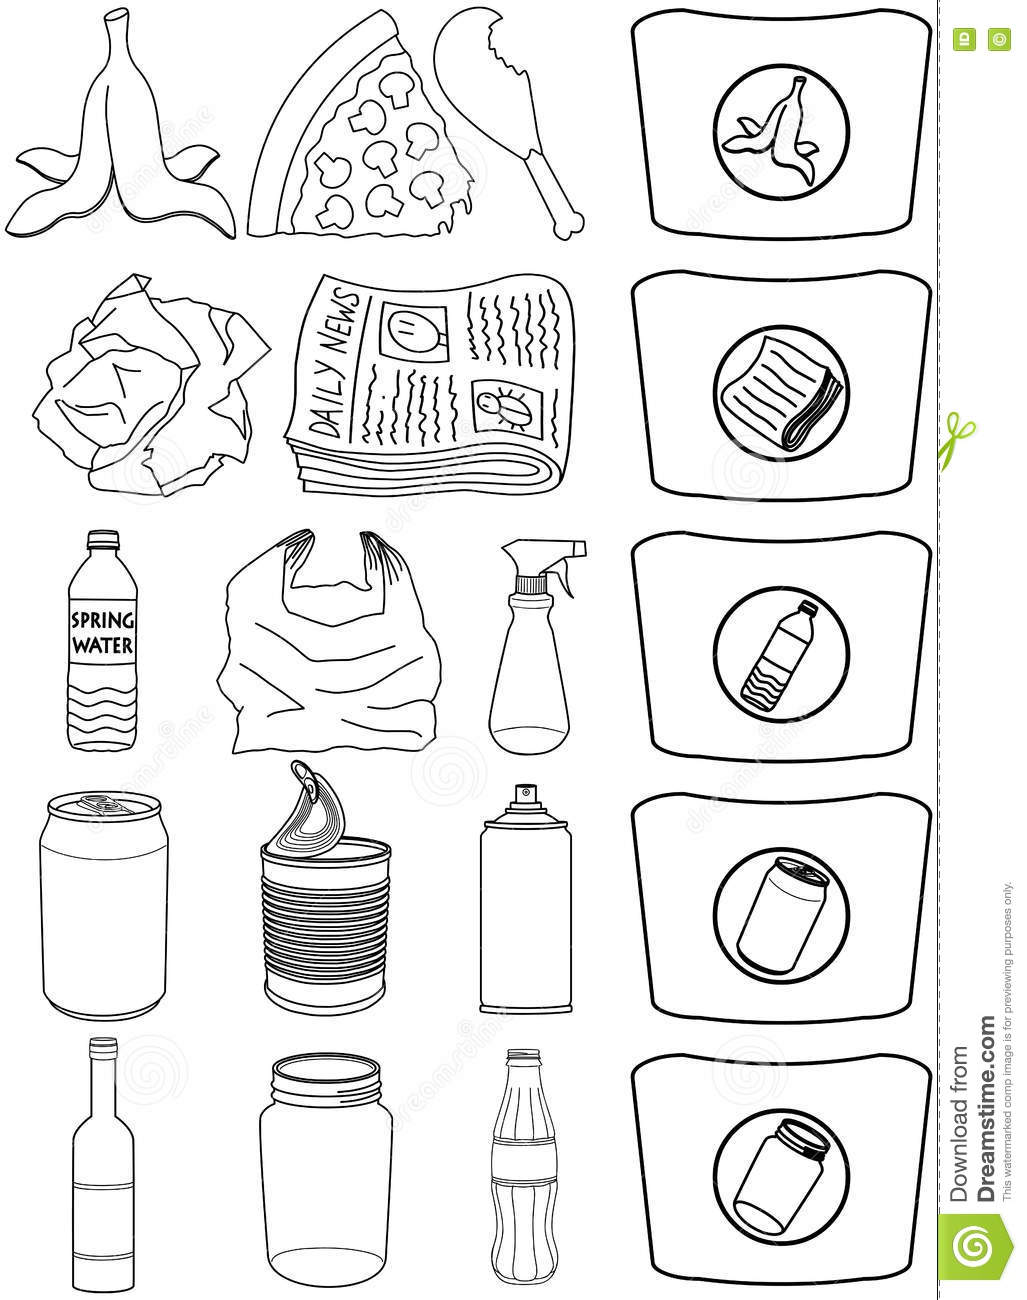 Food Bottles Cans Paper Trash Recycle Pack Lineart Stock